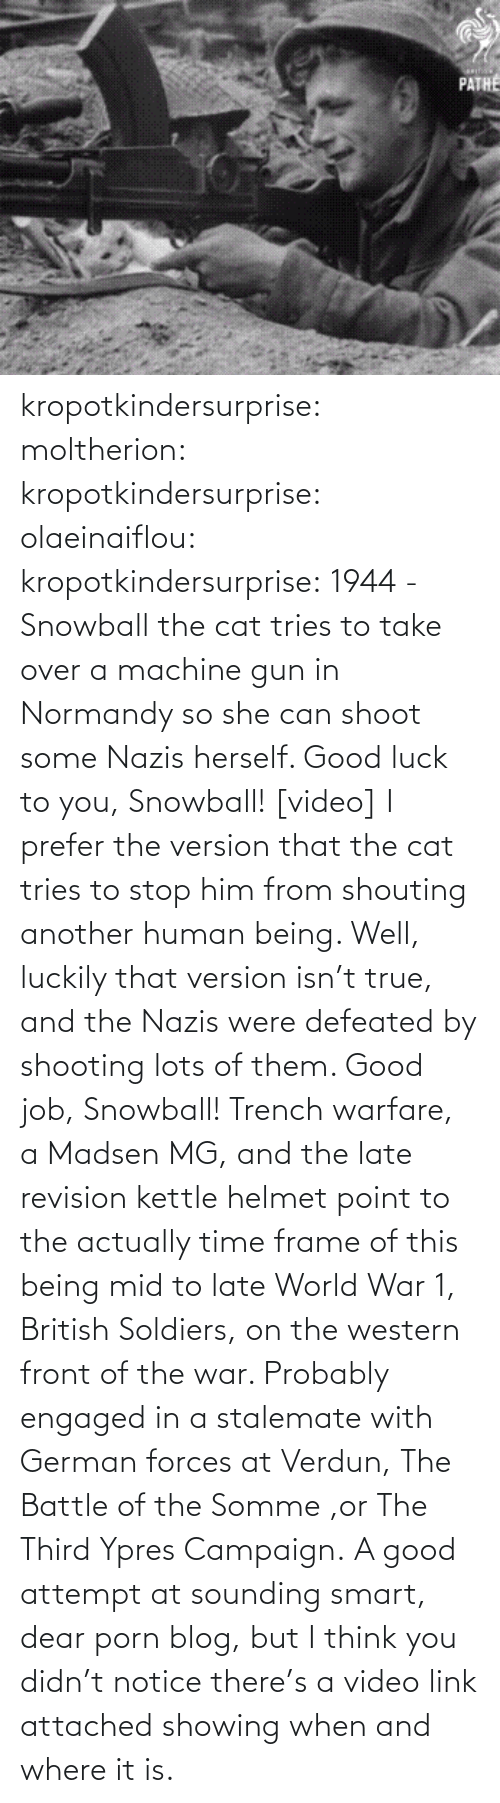 Lots Of: PATHE kropotkindersurprise: moltherion:  kropotkindersurprise:  olaeinaiflou:  kropotkindersurprise: 1944 - Snowball the cat tries to take over a machine gun in Normandy so she can shoot some Nazis herself. Good luck to you, Snowball! [video]  I prefer the version that the cat tries to stop him from shouting another human being.   Well, luckily that version isn't true, and the Nazis were defeated by shooting lots of them. Good job, Snowball!   Trench warfare, a Madsen MG, and the late revision kettle helmet point to the actually time frame of this being mid to late World War 1, British Soldiers, on the western front of the war. Probably engaged in a stalemate with German forces at Verdun, The Battle of the Somme ,or The Third Ypres Campaign.  A good attempt at sounding smart, dear porn blog, but I think you didn't notice there's a video link attached showing when and where it is.